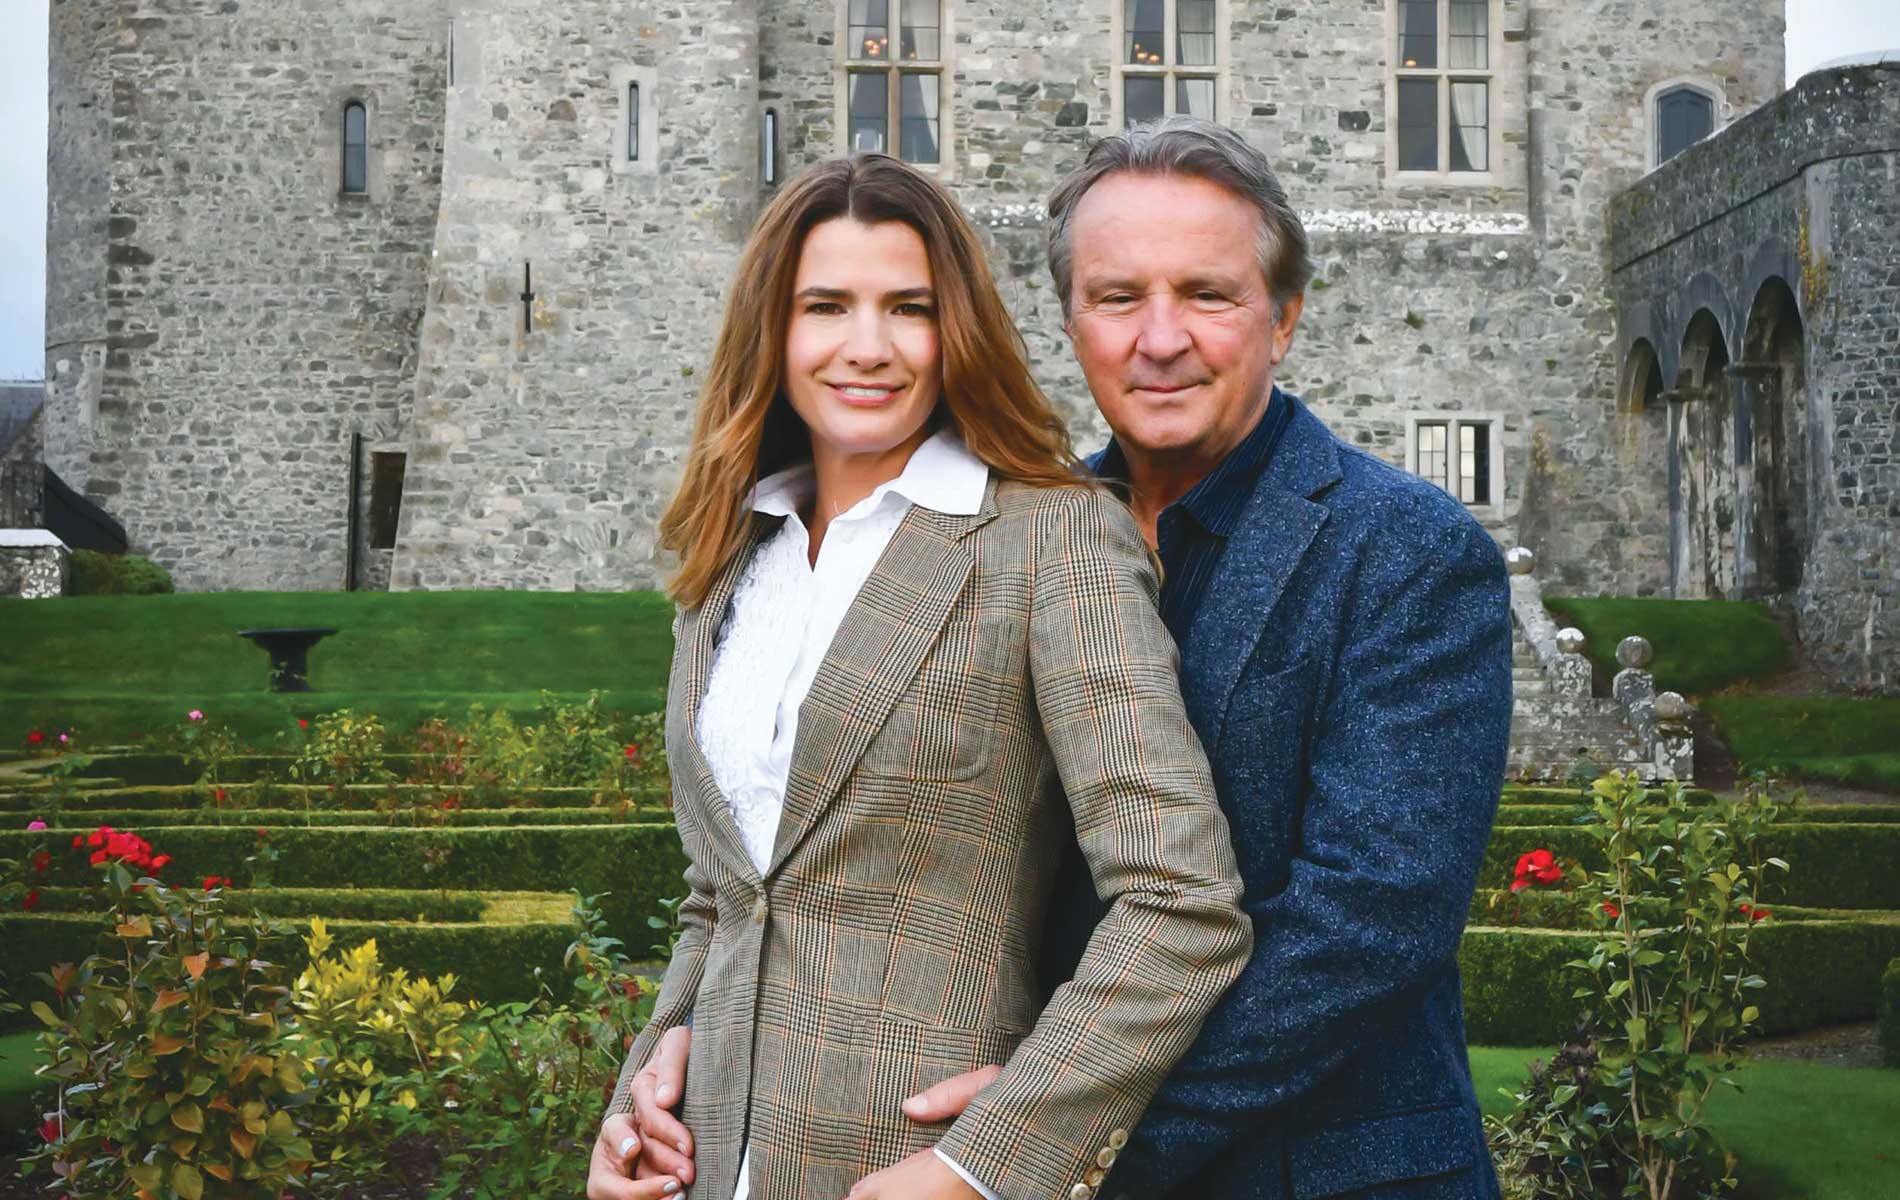 A Love Story, Christy and Jay Cashman, owners of Kilkea Castle in County Kildare, Ireland